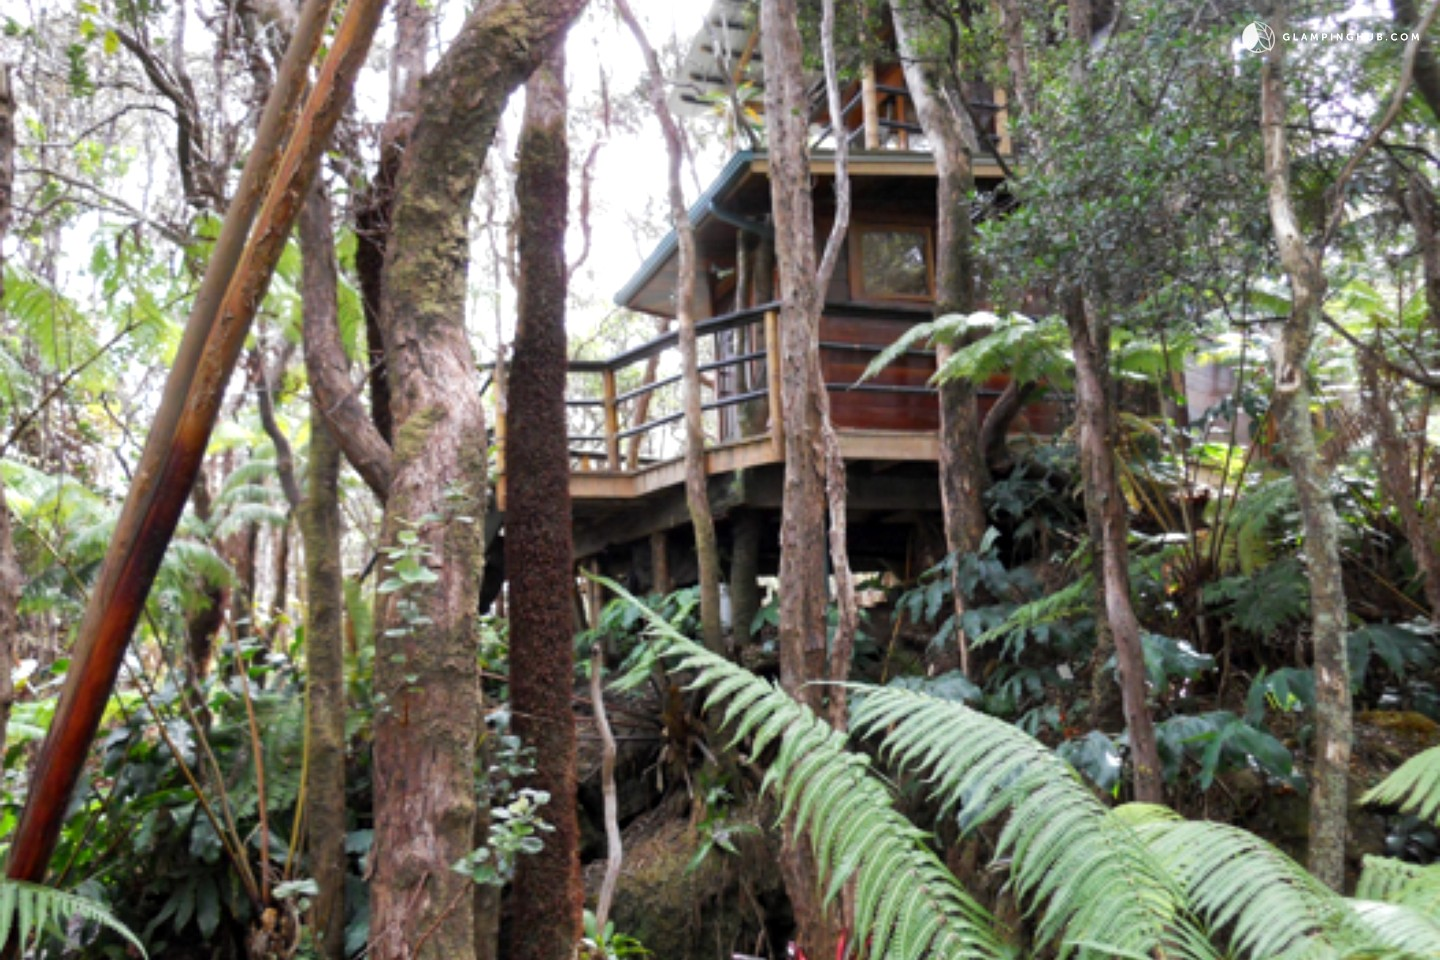 Treehouse Pictures Tree House On Big Island Hawaii Near Volcano